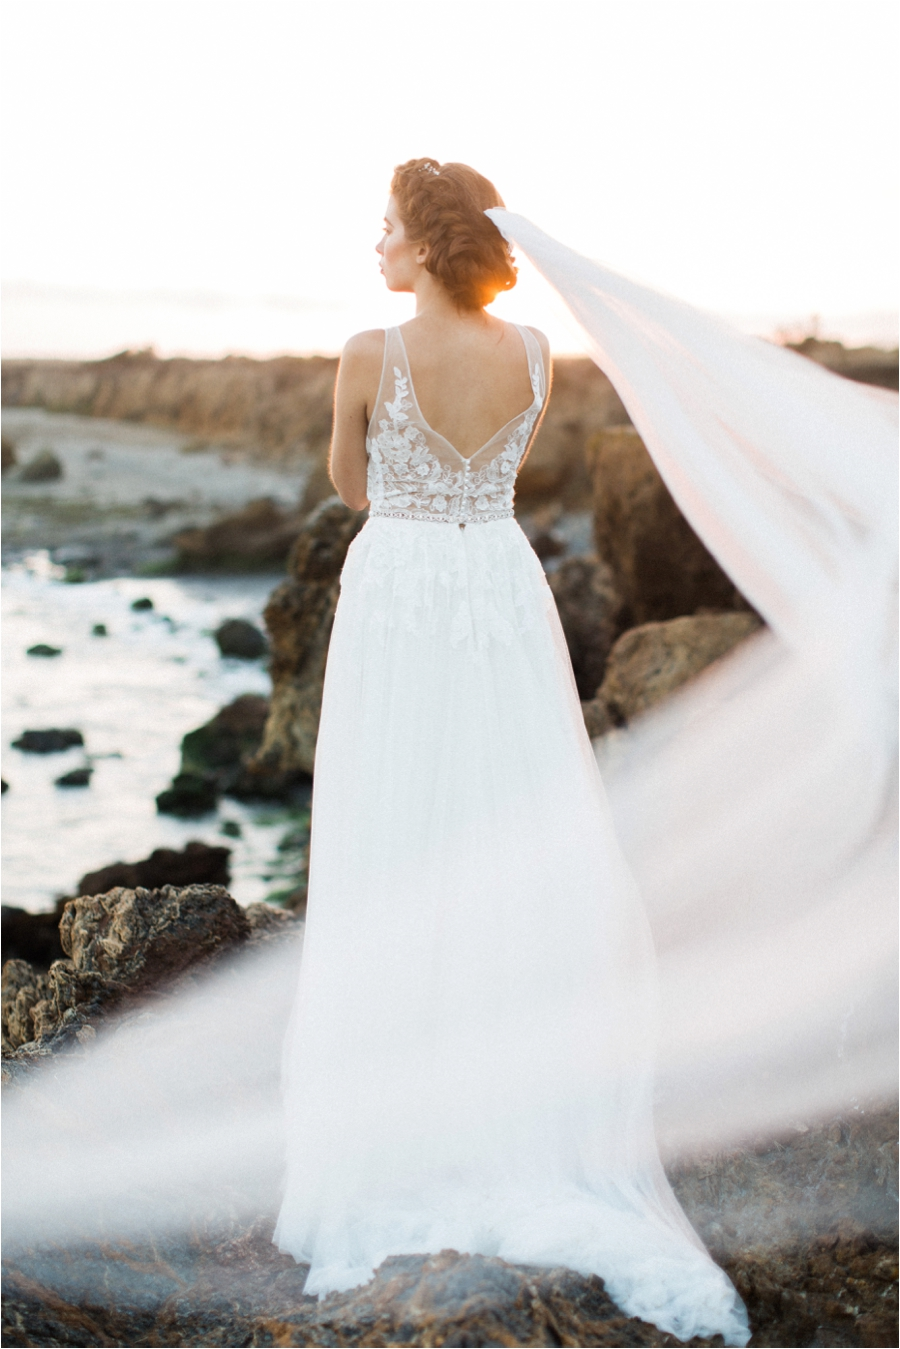 San-Luis-Obispo-wedding-photographer-watters-bridal-gown-taylor-kinzie-photography_0916